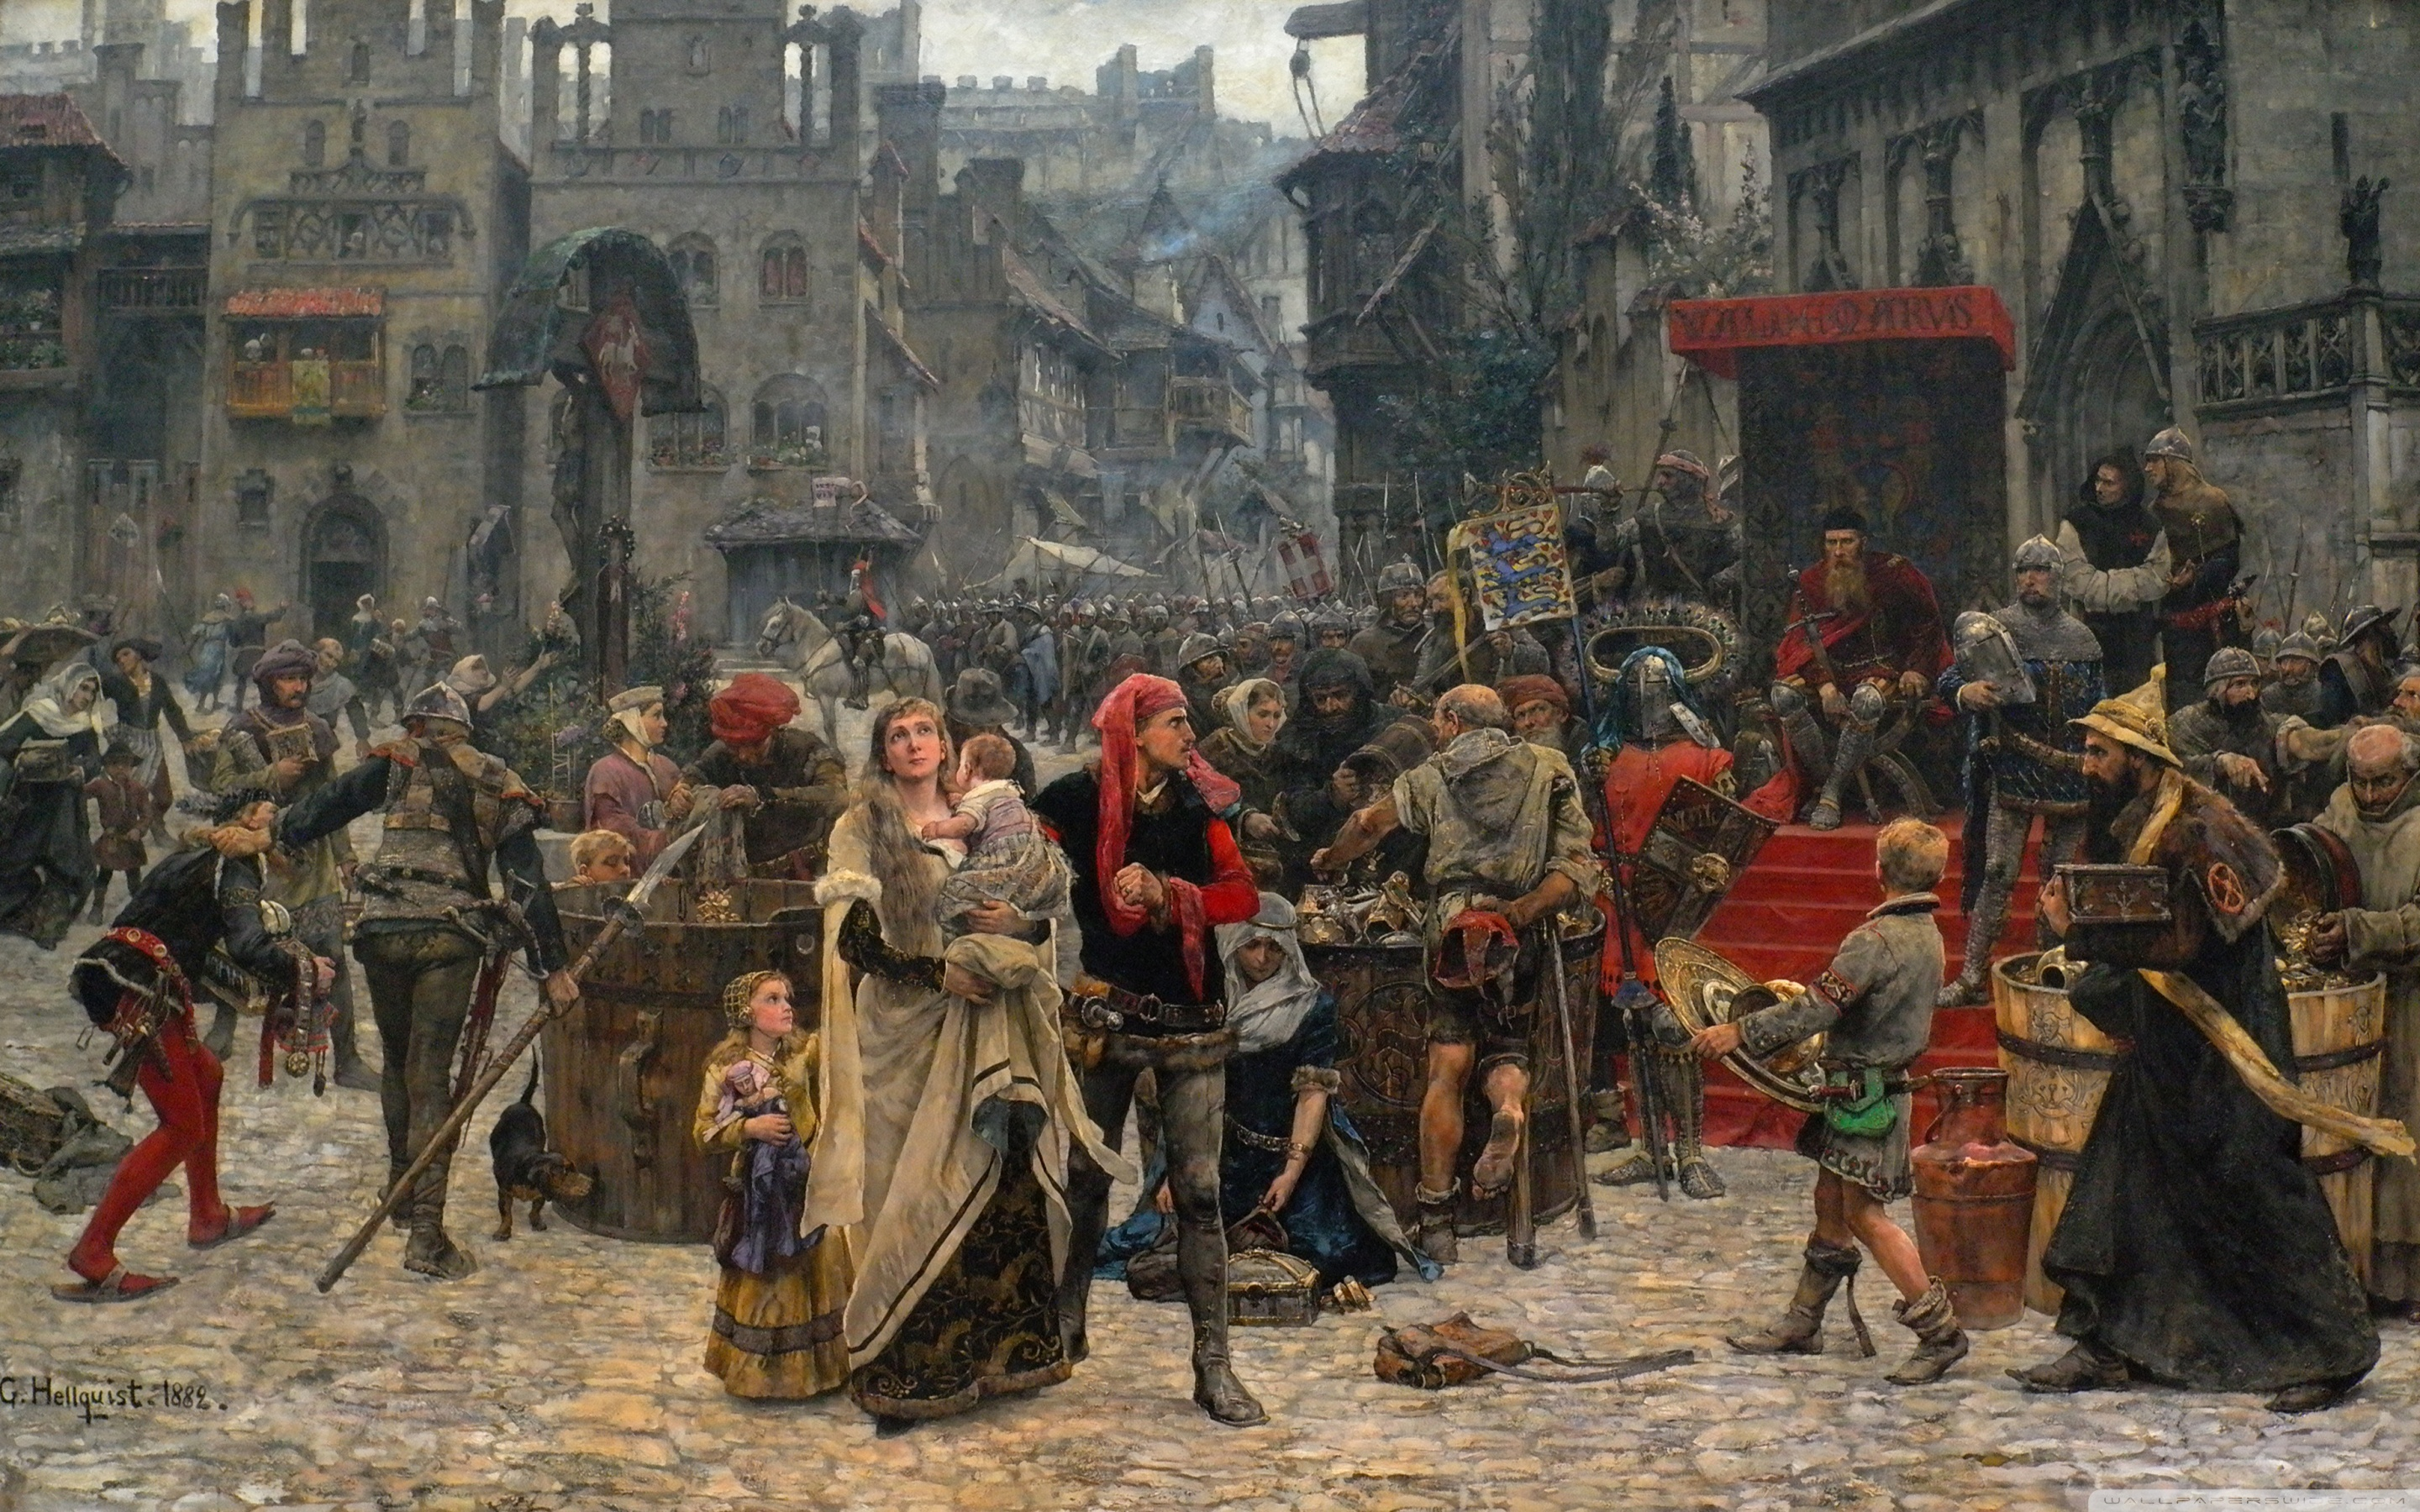 Middle ages photo